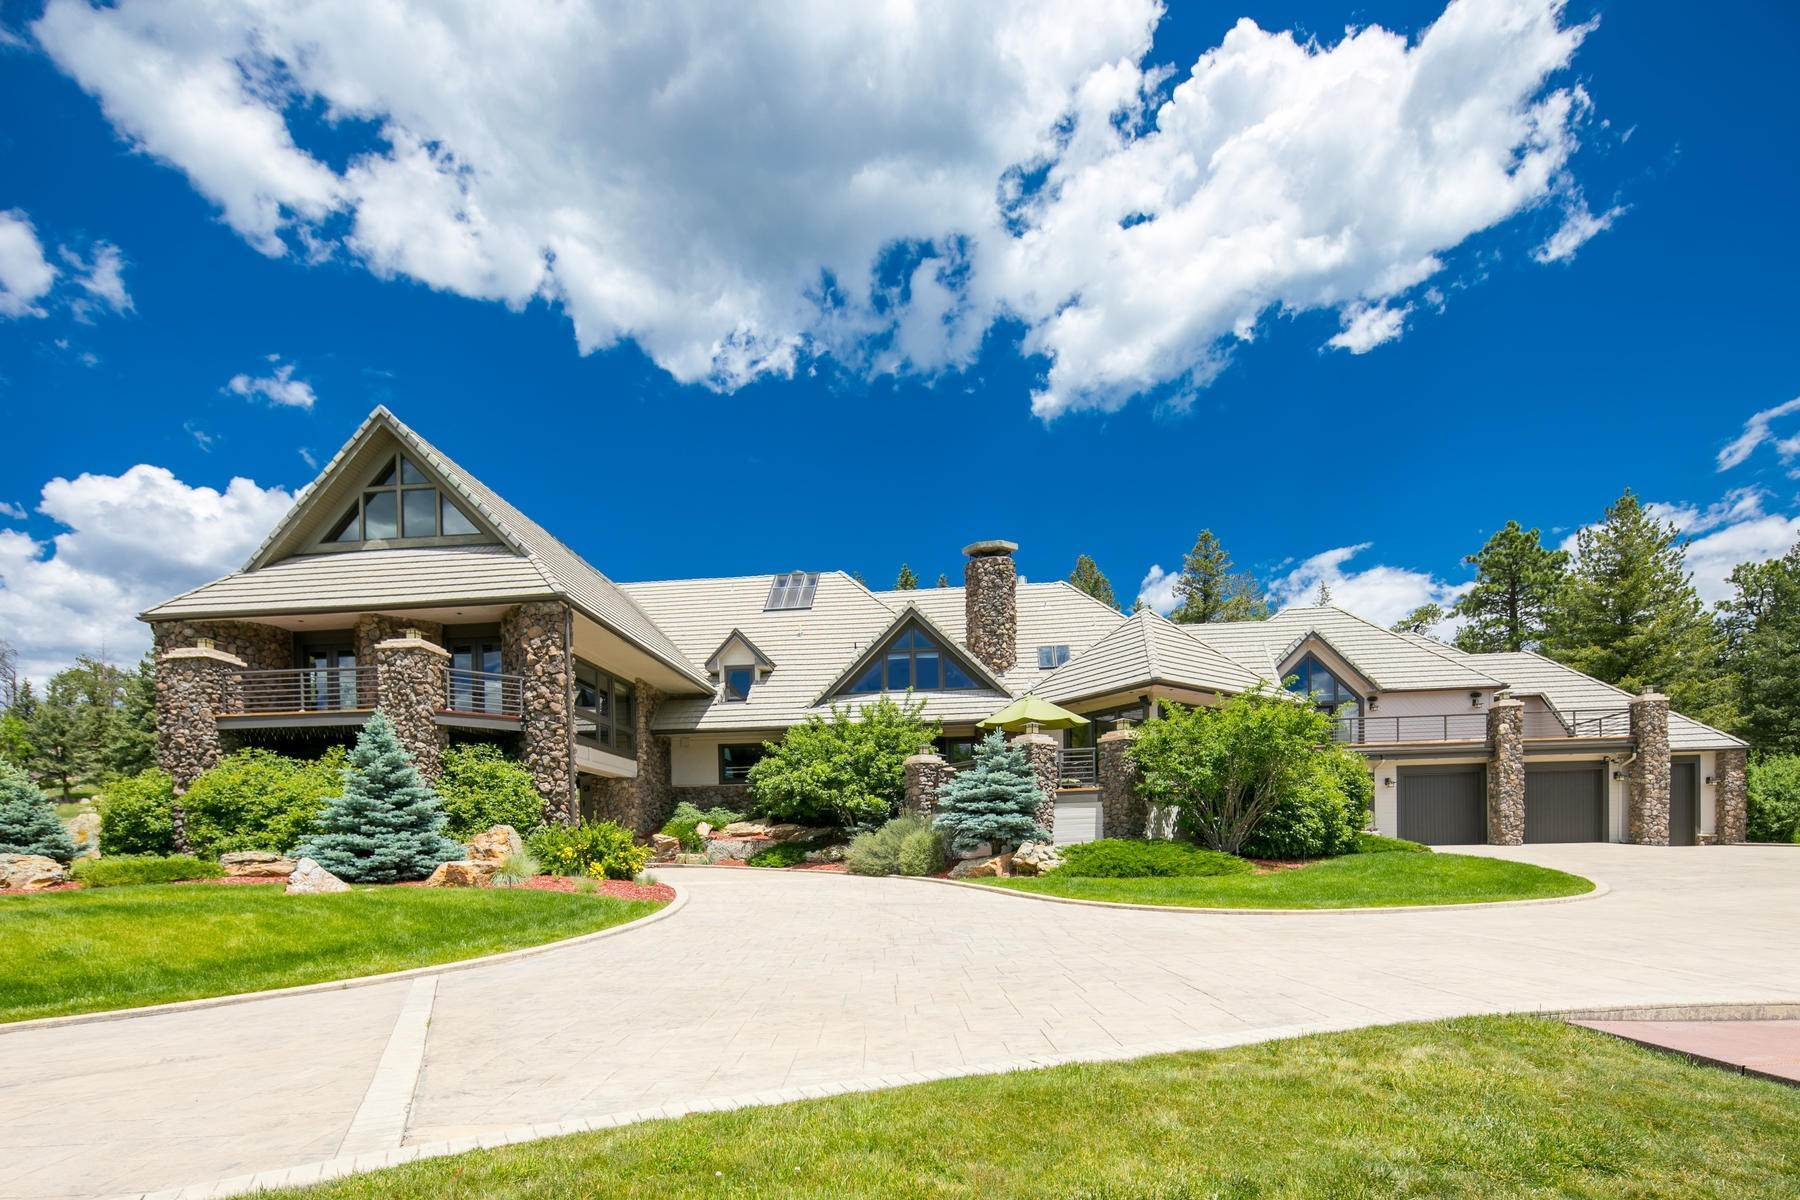 38. Single Family Homes for Active at This Luxurious Estate is More of a Lifestyle Choice, 6917 Timbers Drive Evergreen, Colorado 80439 United States